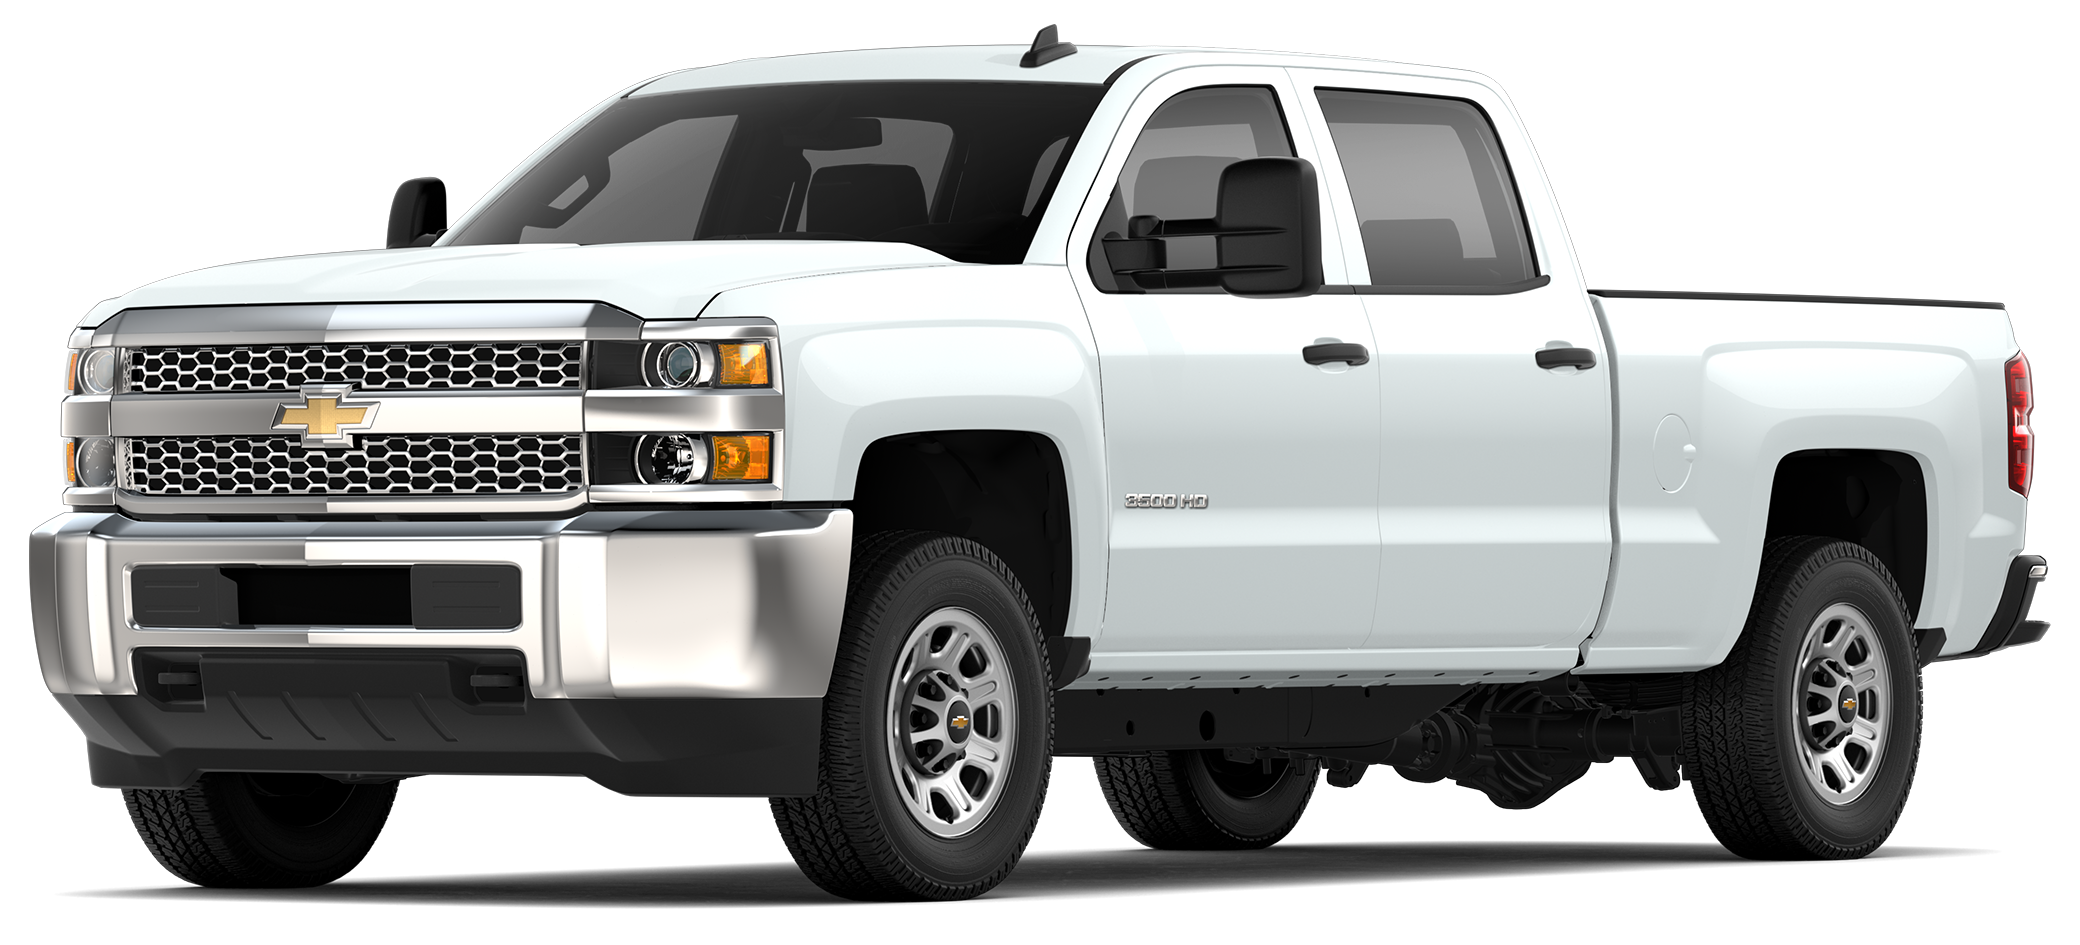 Reedman Toll Chevy >> 2019 Chevrolet Silverado 3500HD Incentives, Specials & Offers in Langhorne PA